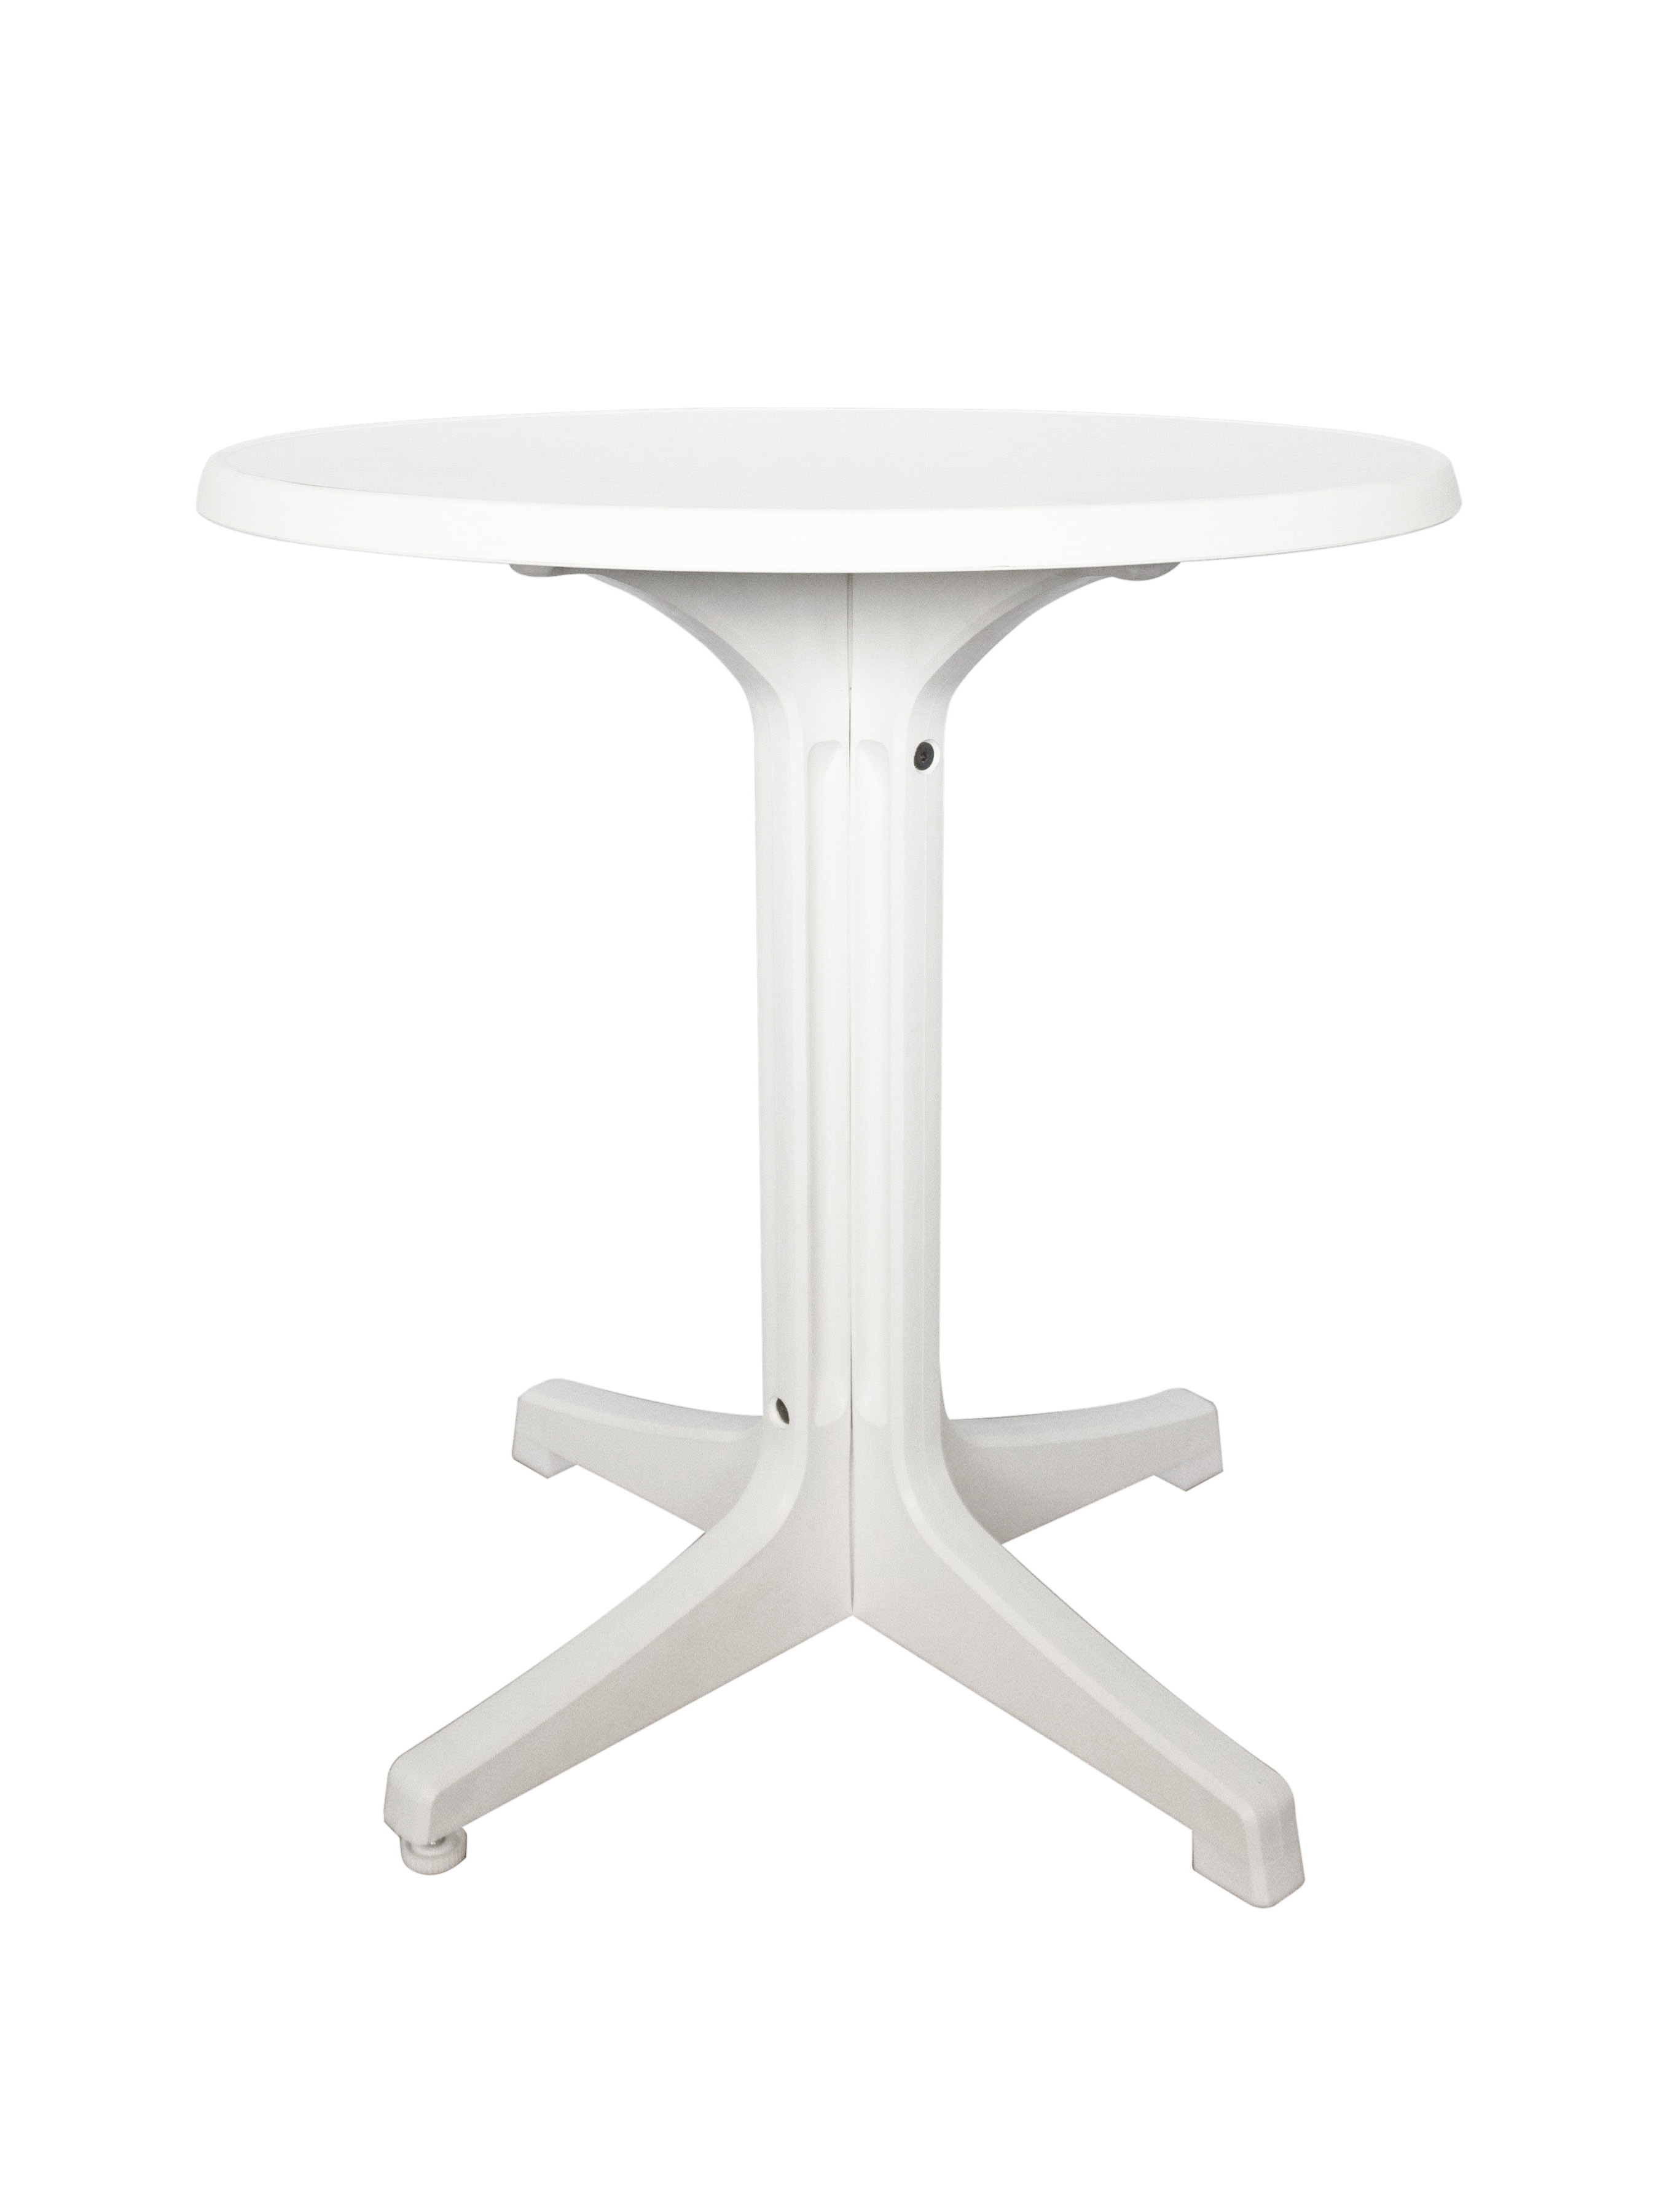 Grosfillex Omega 24 Round Dining Table